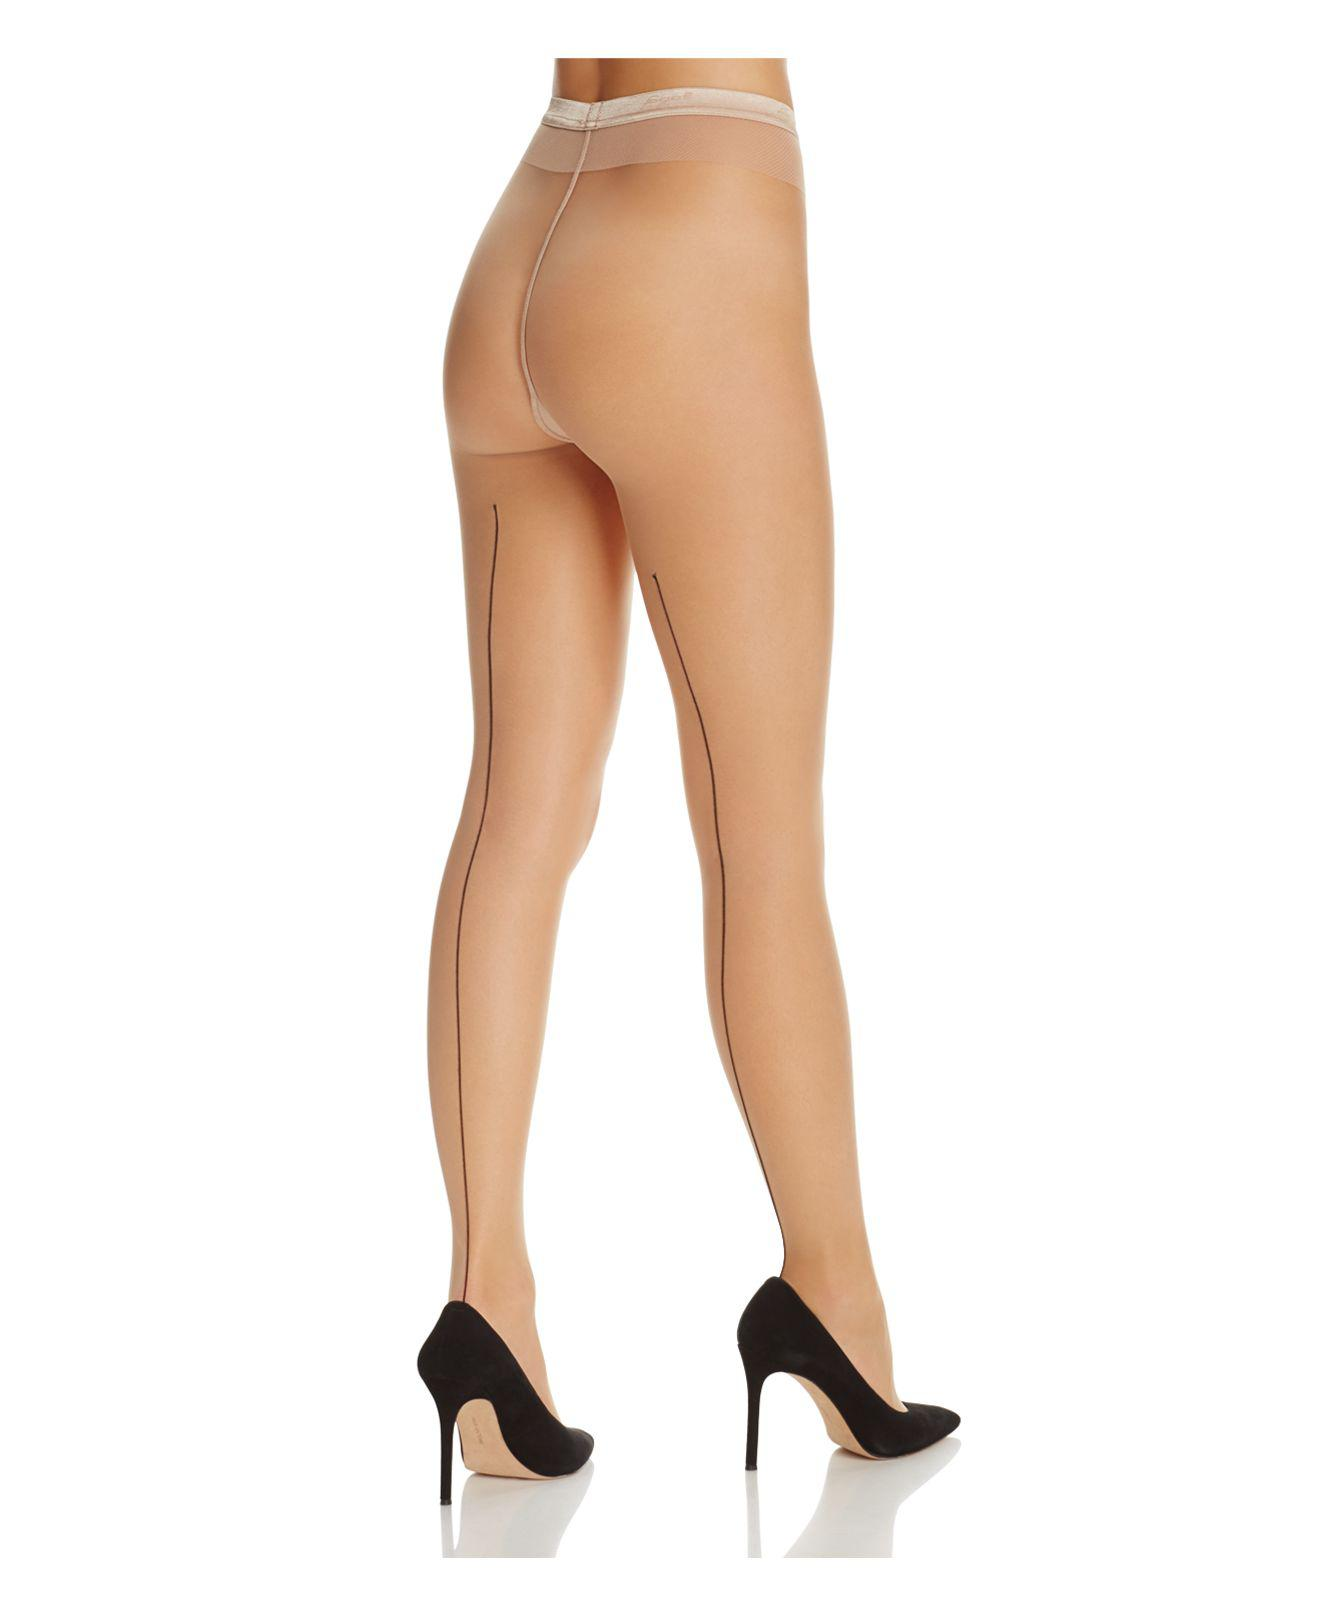 56b0842f5c81f Lyst - Fogal Catwalk Couture Tights in Natural